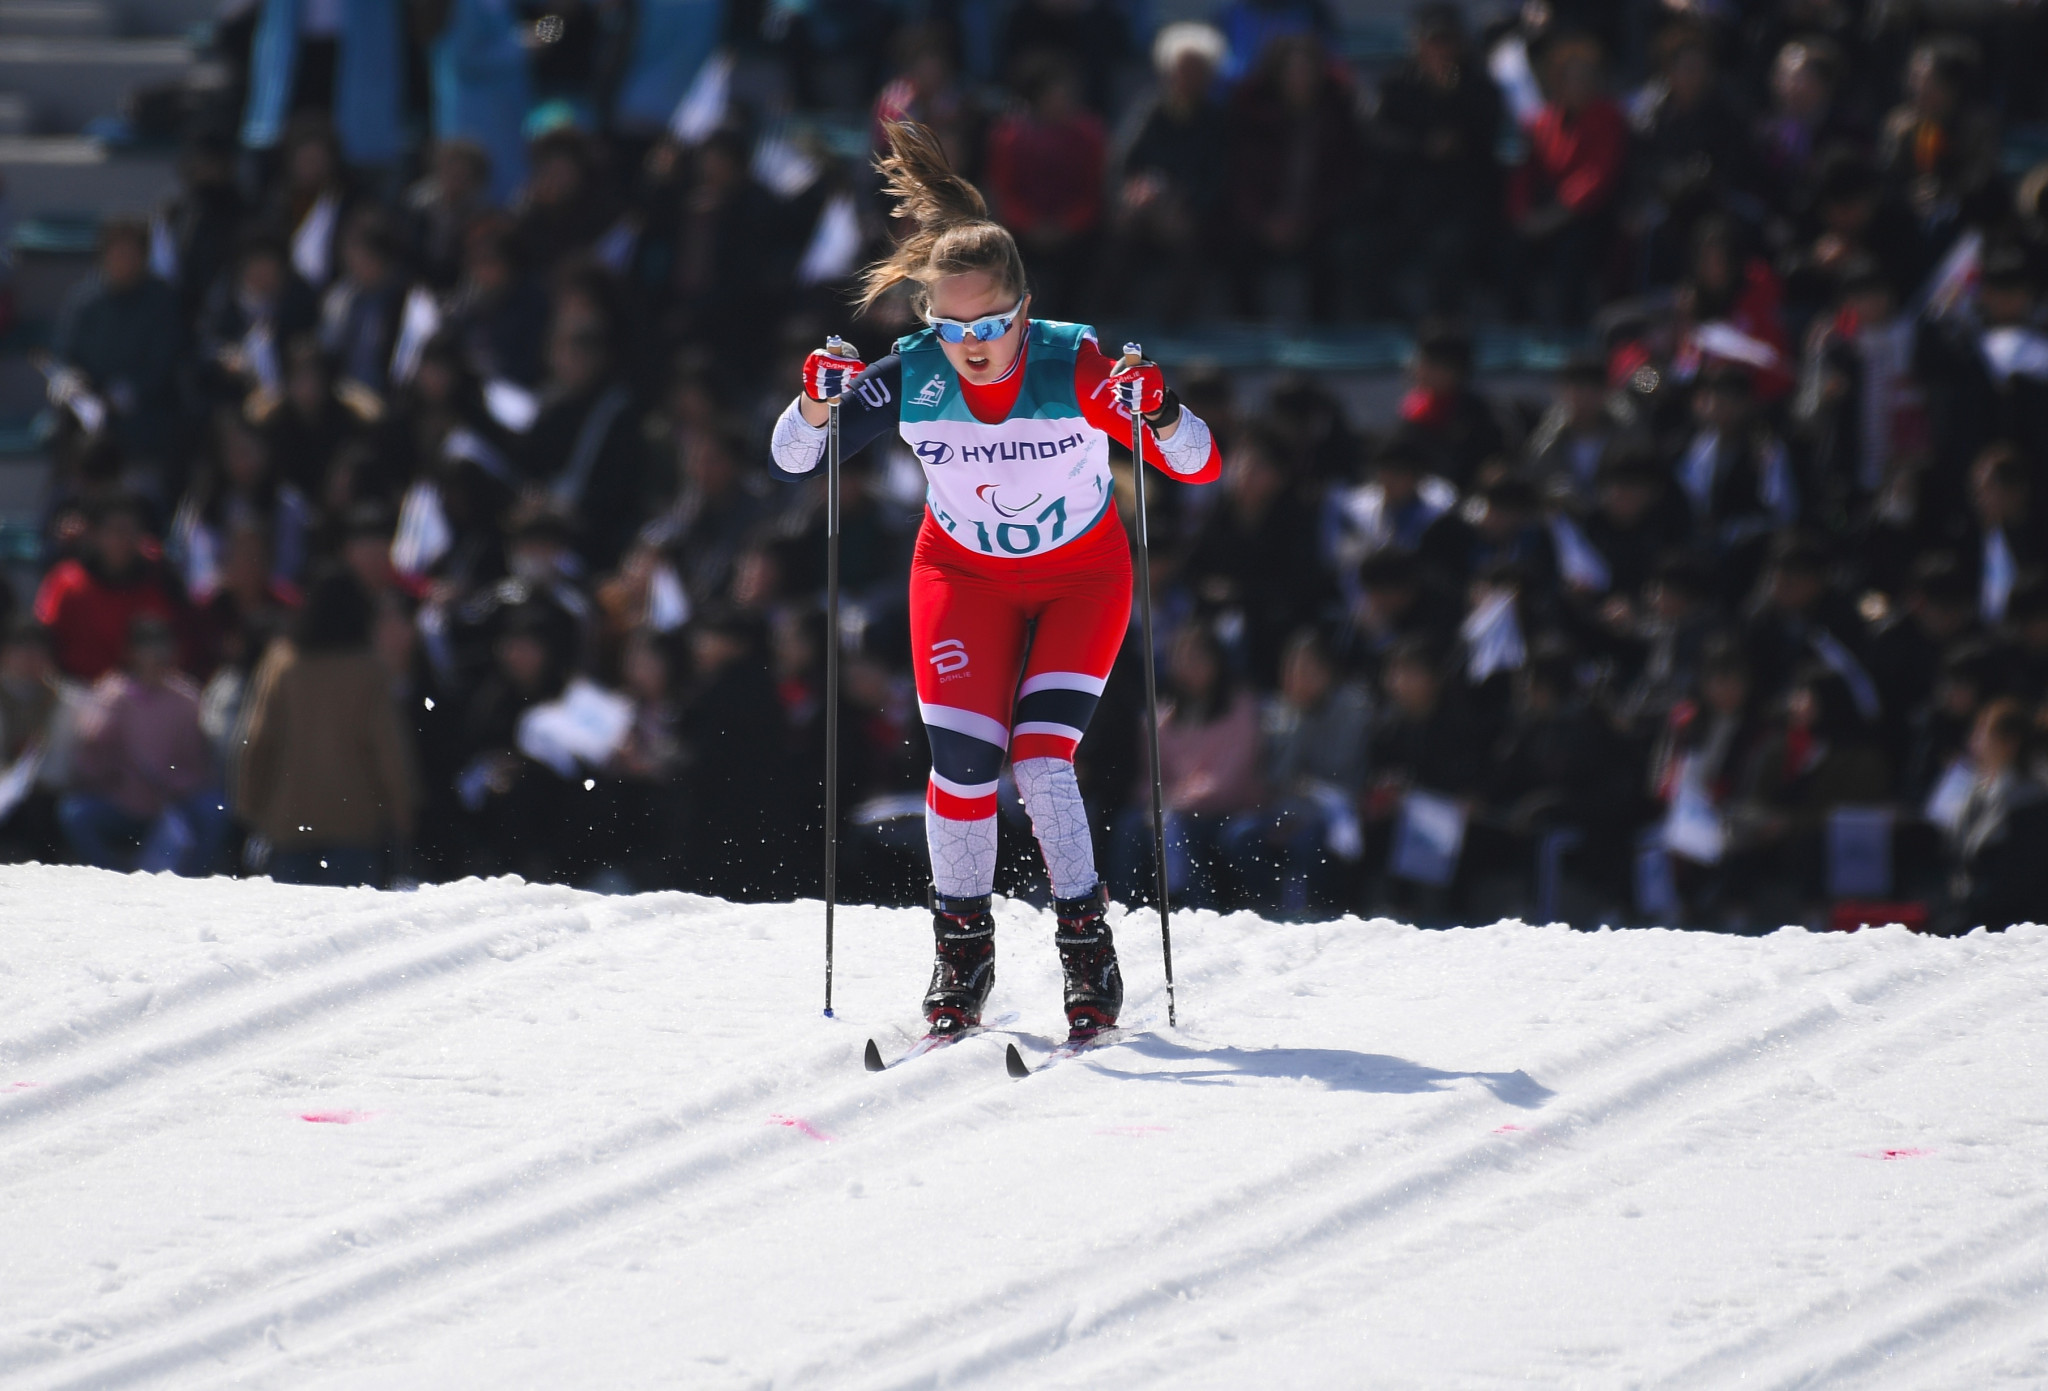 Norway's Nilsen shines with three victories at home Para Nordic Skiing World Cup